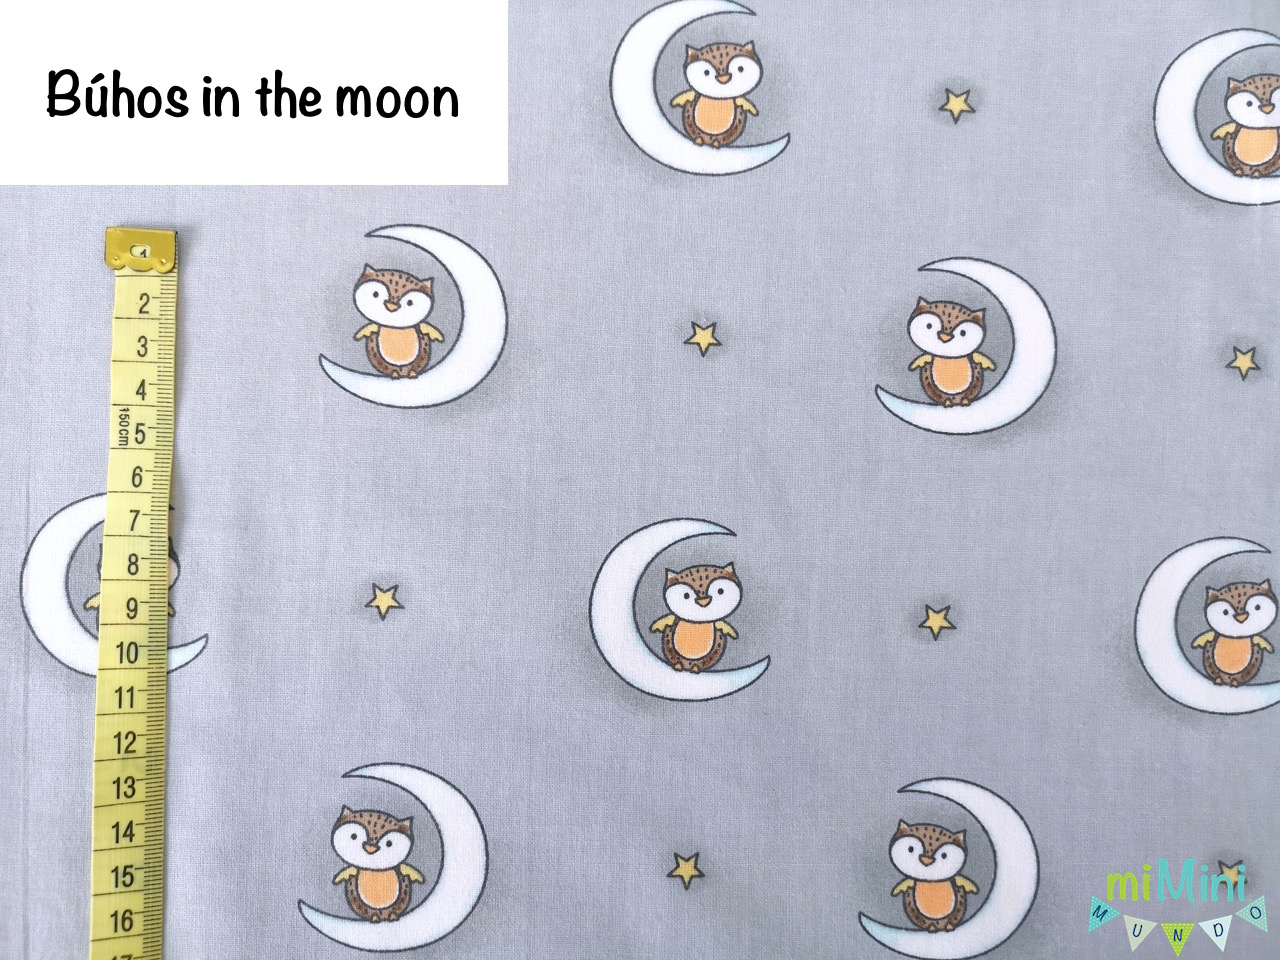 Búhos in the moon